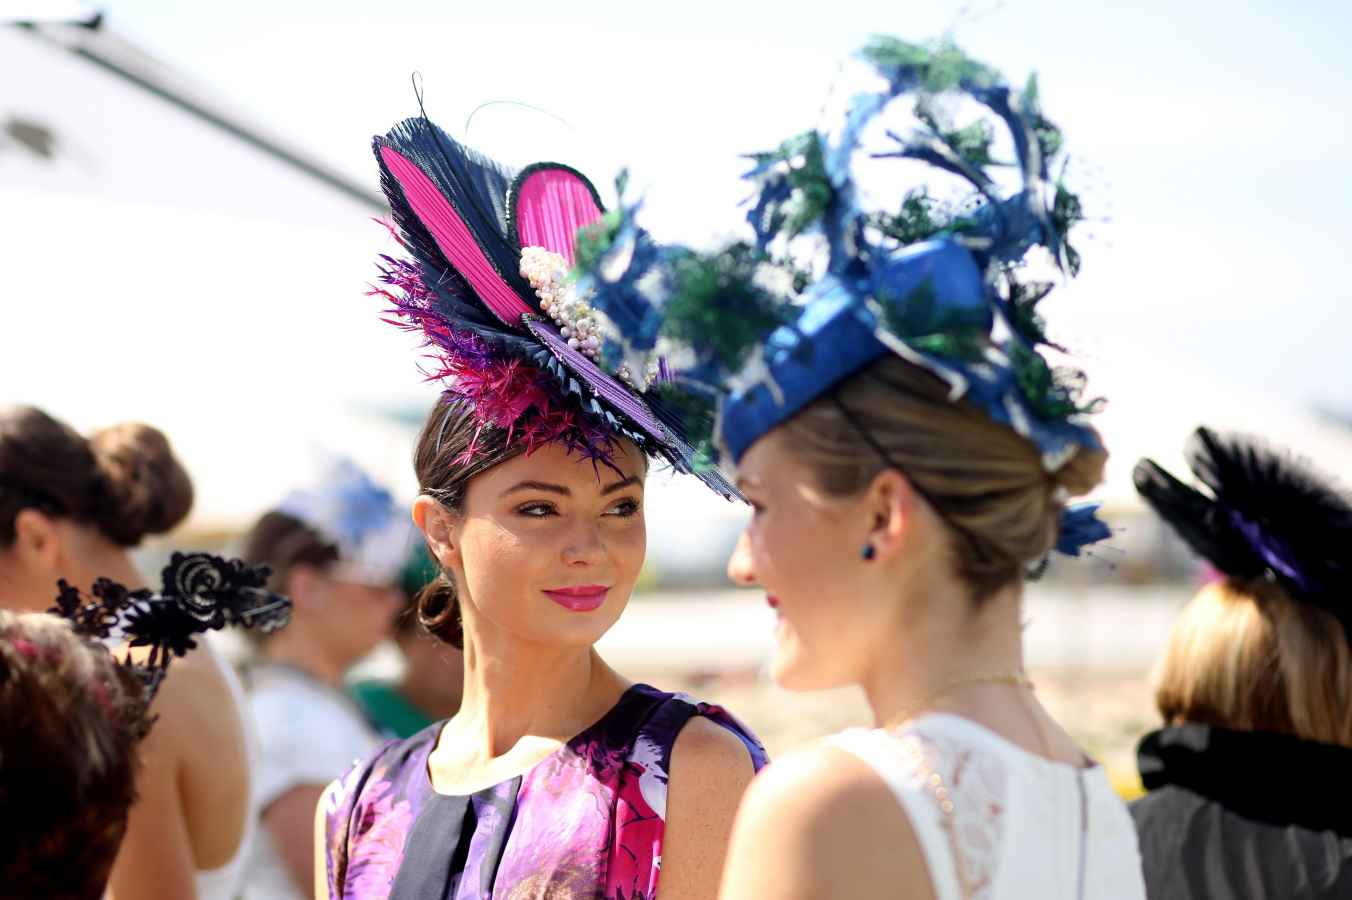 Forum on this topic: Top Spring Racing Carnival Trends 2015, top-spring-racing-carnival-trends-2015/